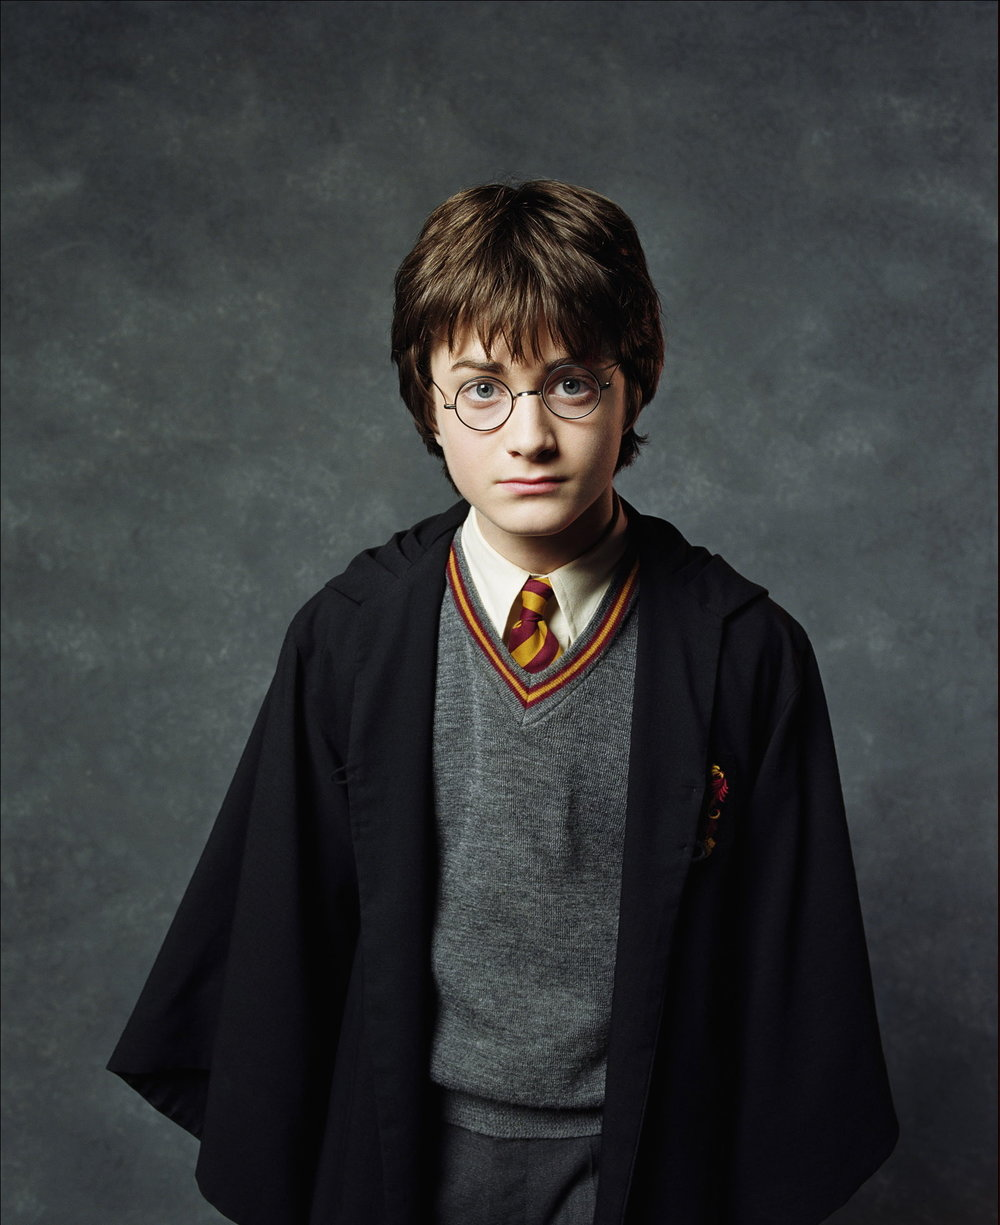 """Harry Potter and the Neural Network - Over the past few weeks I have been rewatching all eight Harry Potter films - something which has been both nostalgic, heart warming and left my search history filled with various forms of """"how many witches and wizards are there in the magical land of Harry Potter?"""" - (the answer, in case you're wondering is decidedly inconclusive and I would strongly encourage JK to get a tweet out asap so I can put this issue to bed)For those of us who are in our mid-20s to mid 30s, Harry Potter was such a large part of our upbringing. Queueing to get the books, arguing with family members over spoiler alerts and prolonged periods of silence as we raced through the latest trial and tribulations of dear old HP."""